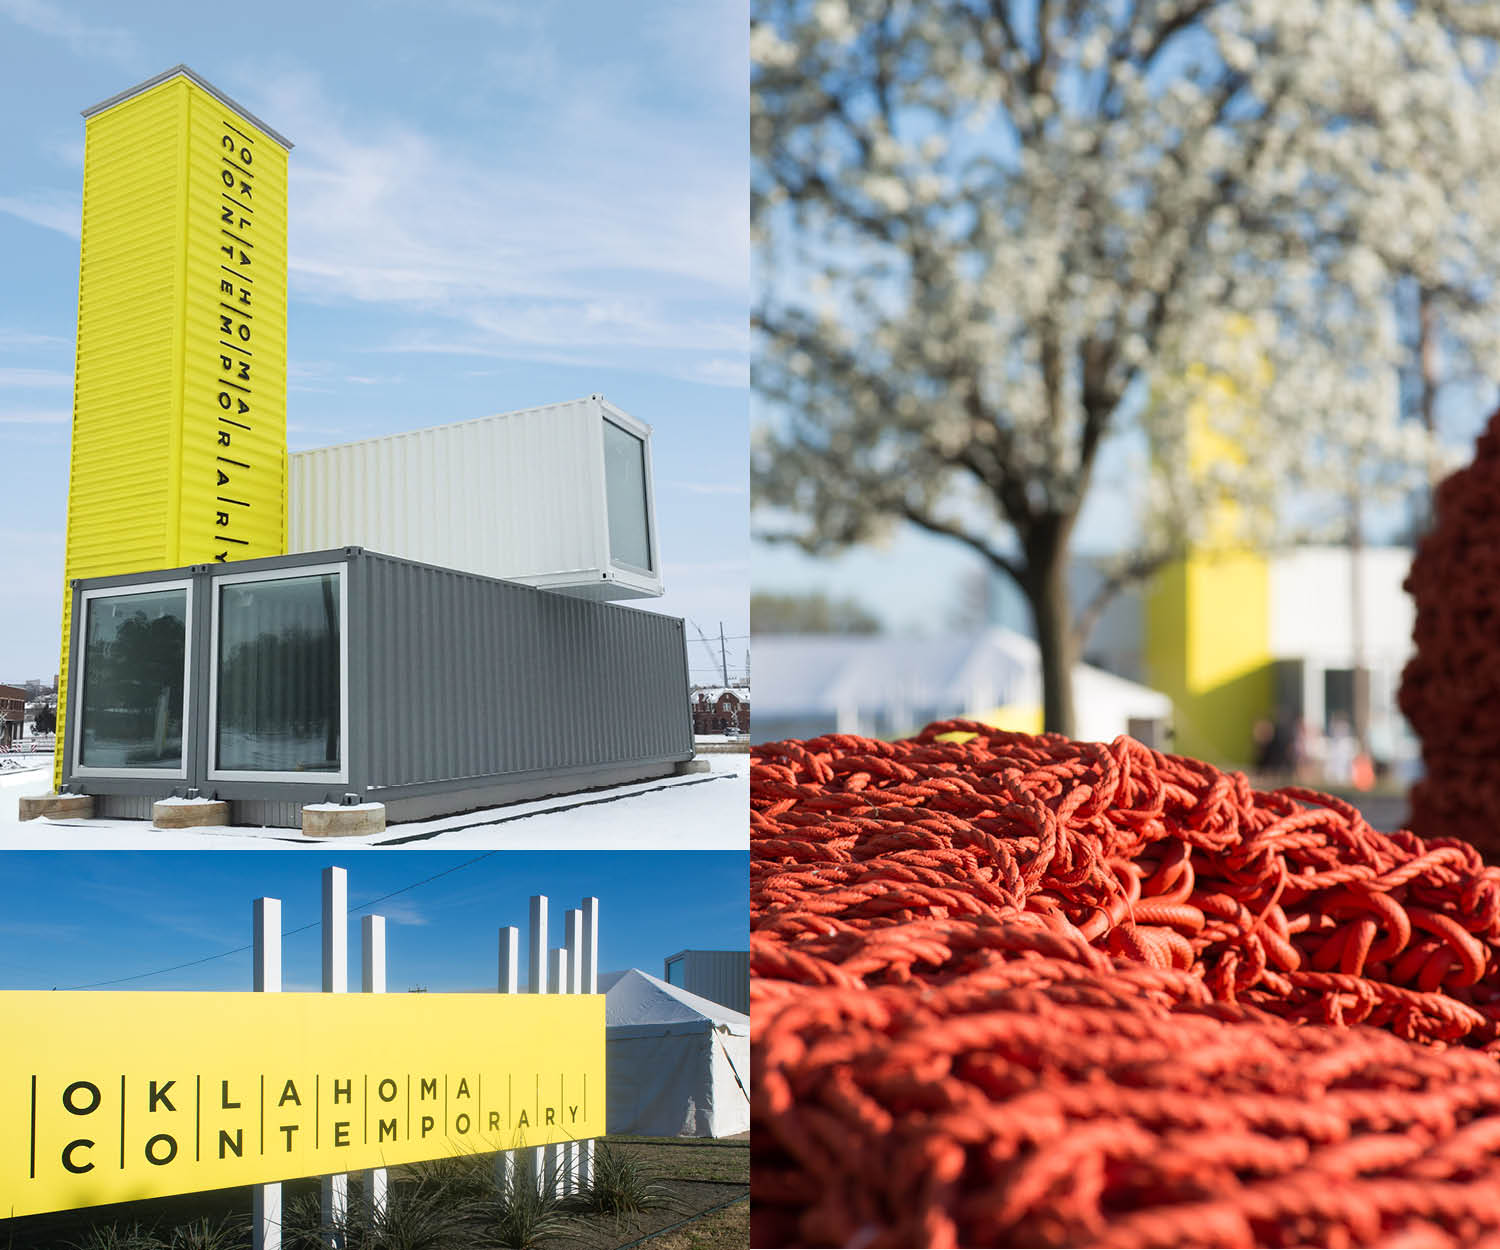 yellow grey and white shipping containers being used for a contemporary art museum